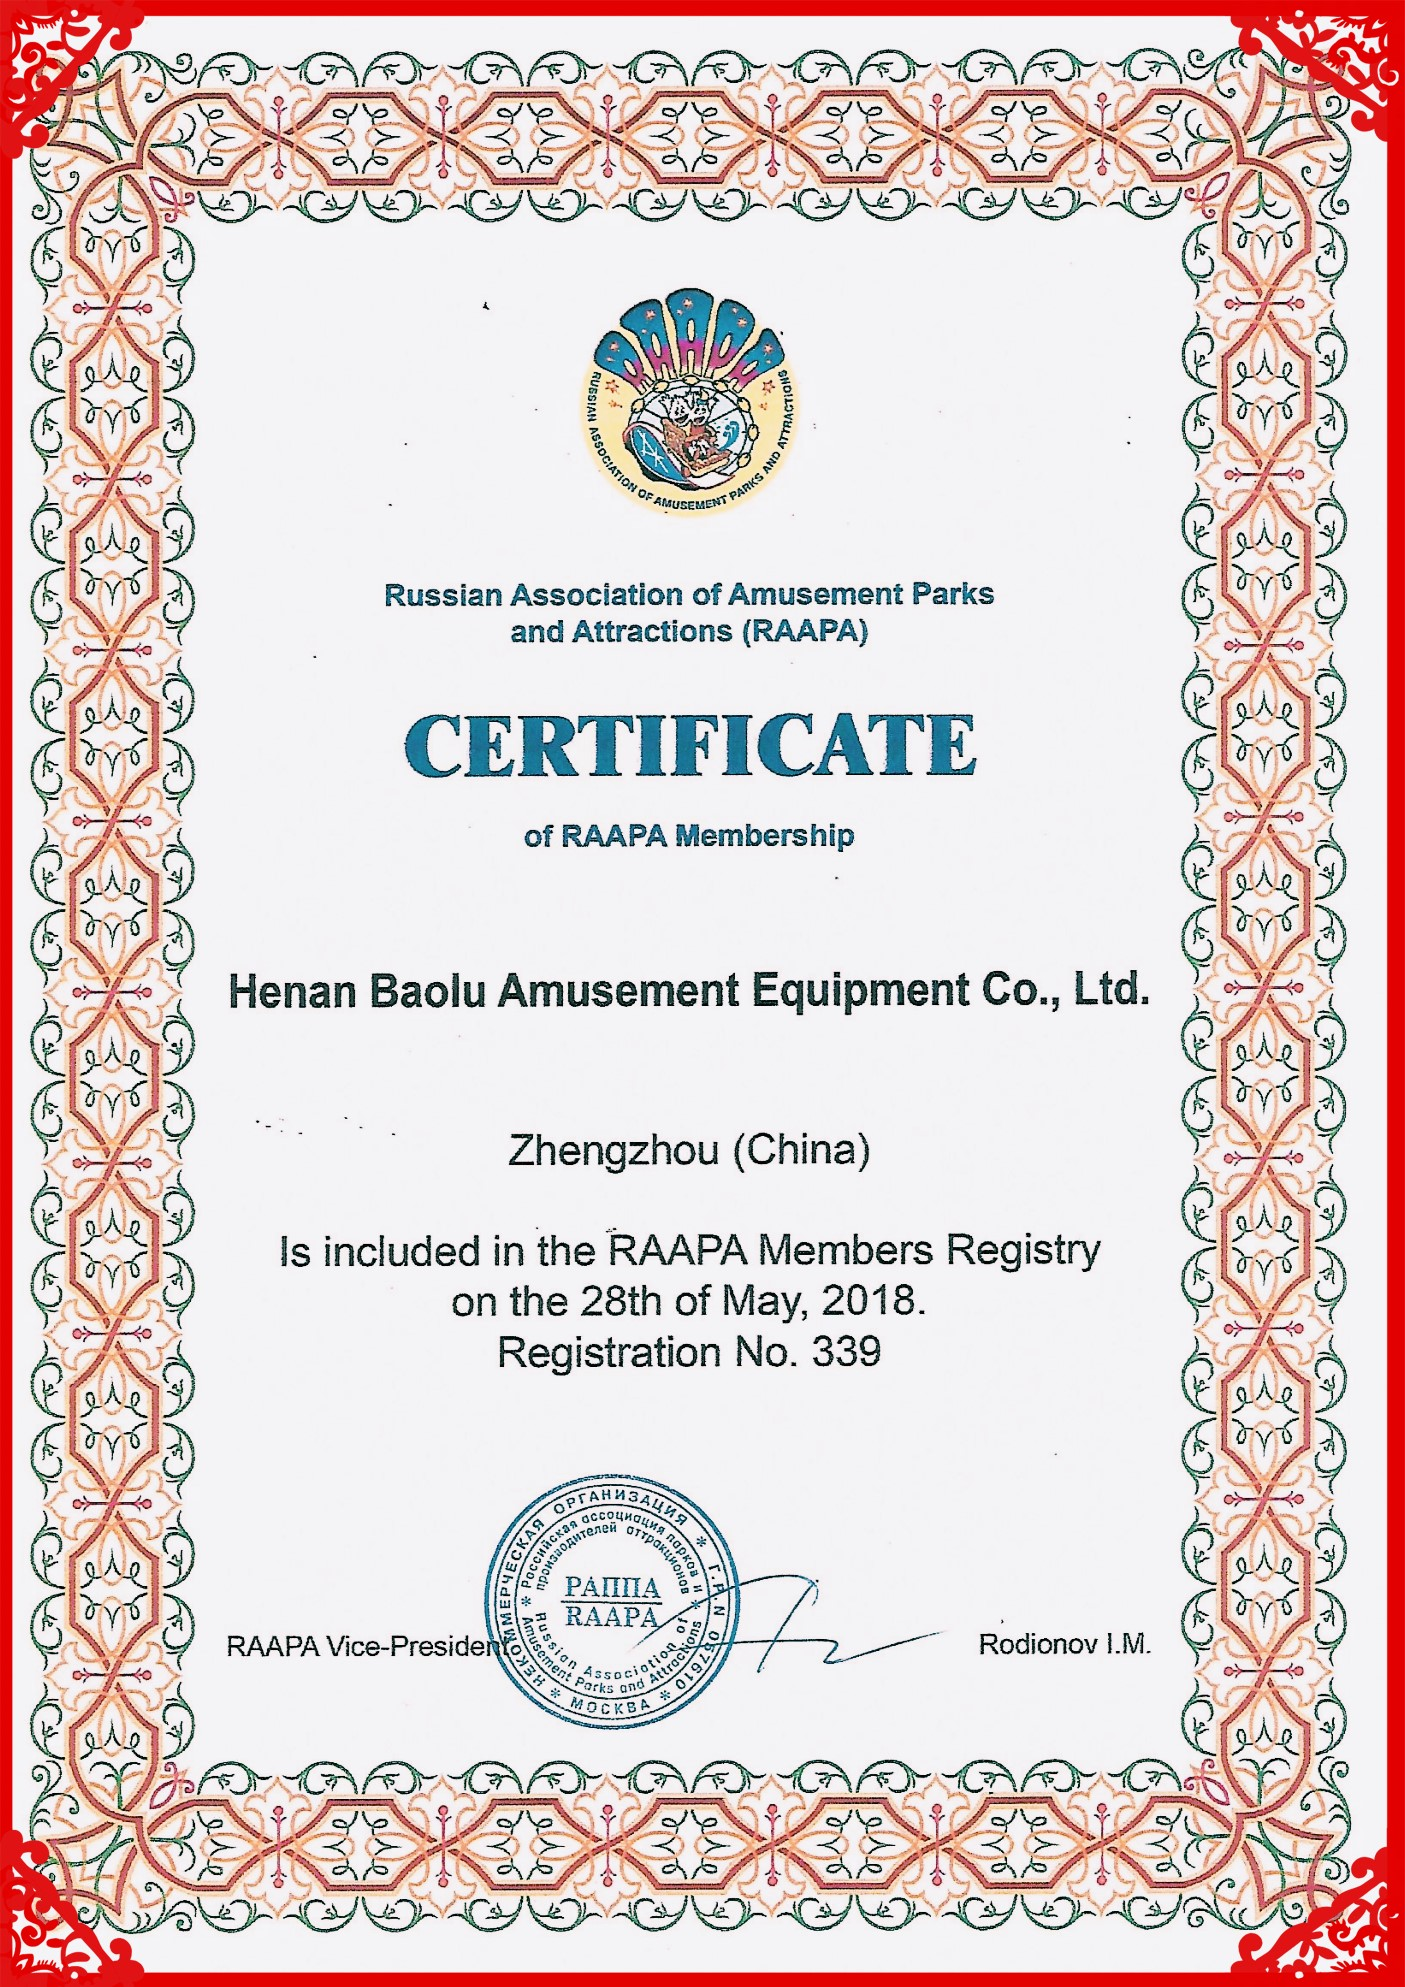 Henan Baolu Amusement Equipment Co., Ltd